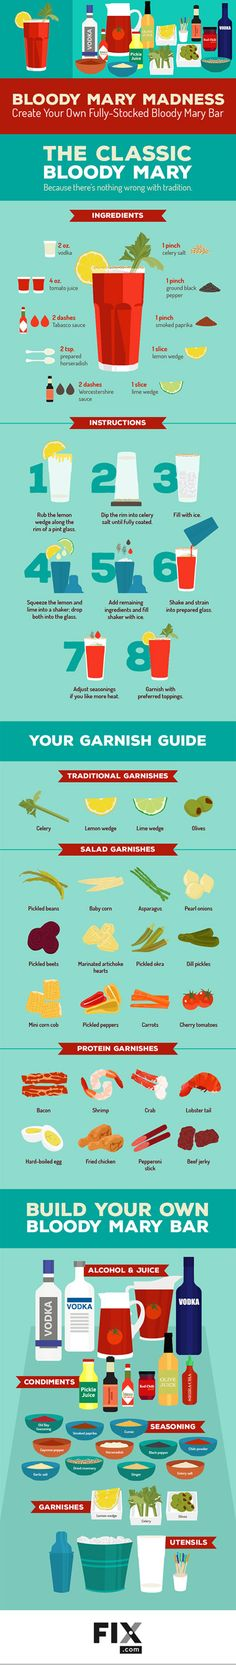 There are no limits on what you can put on a Bloody Mary, check out our garnish guide for ideas!